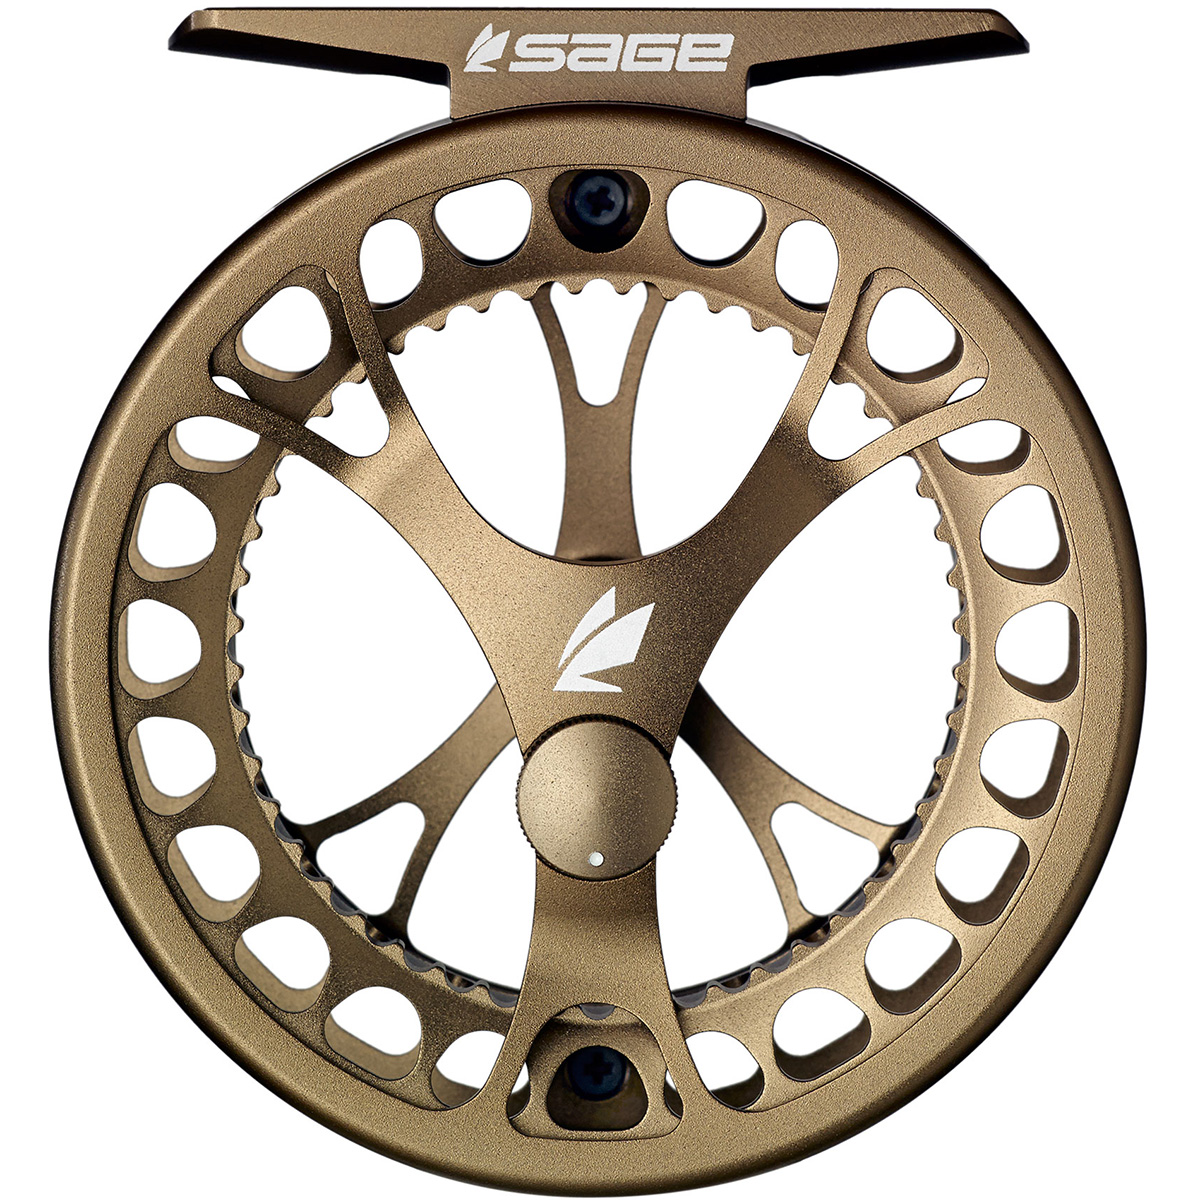 Sage click fly fishing reels ebay for Fly fishing reels ebay